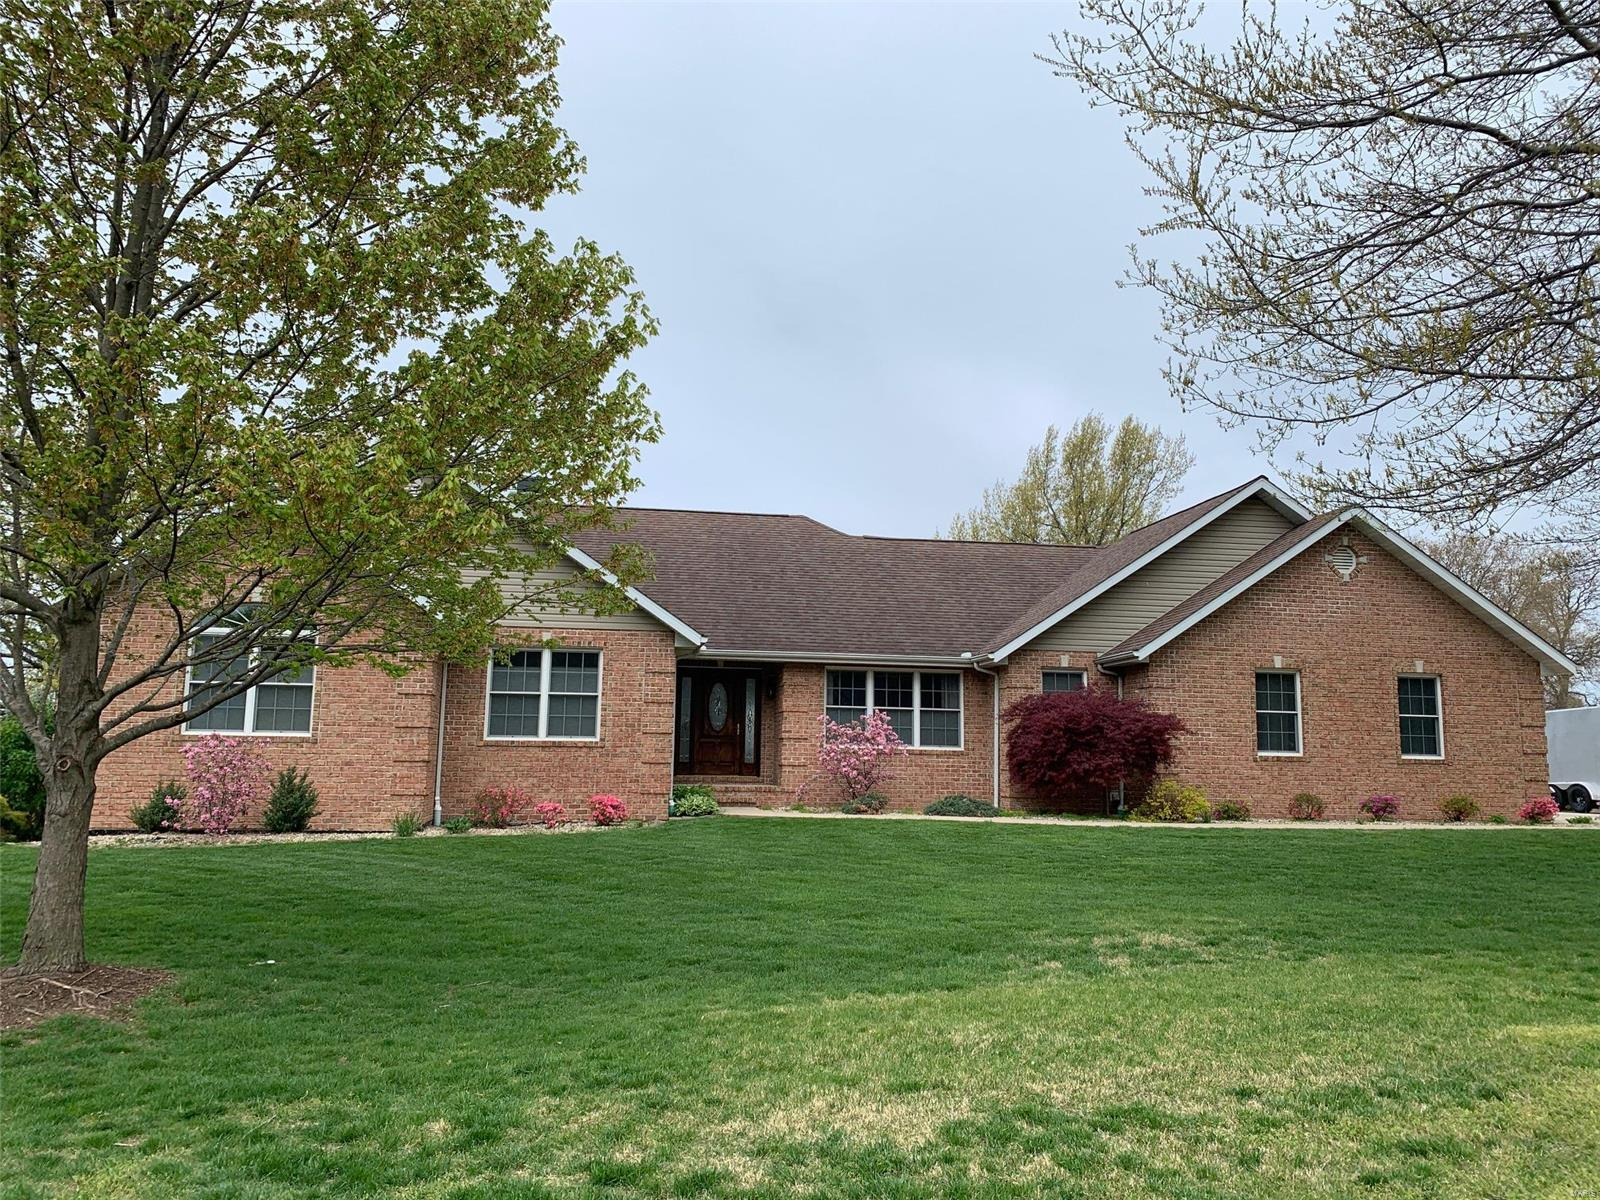 951 Fairway Property Photo - Greenville, IL real estate listing